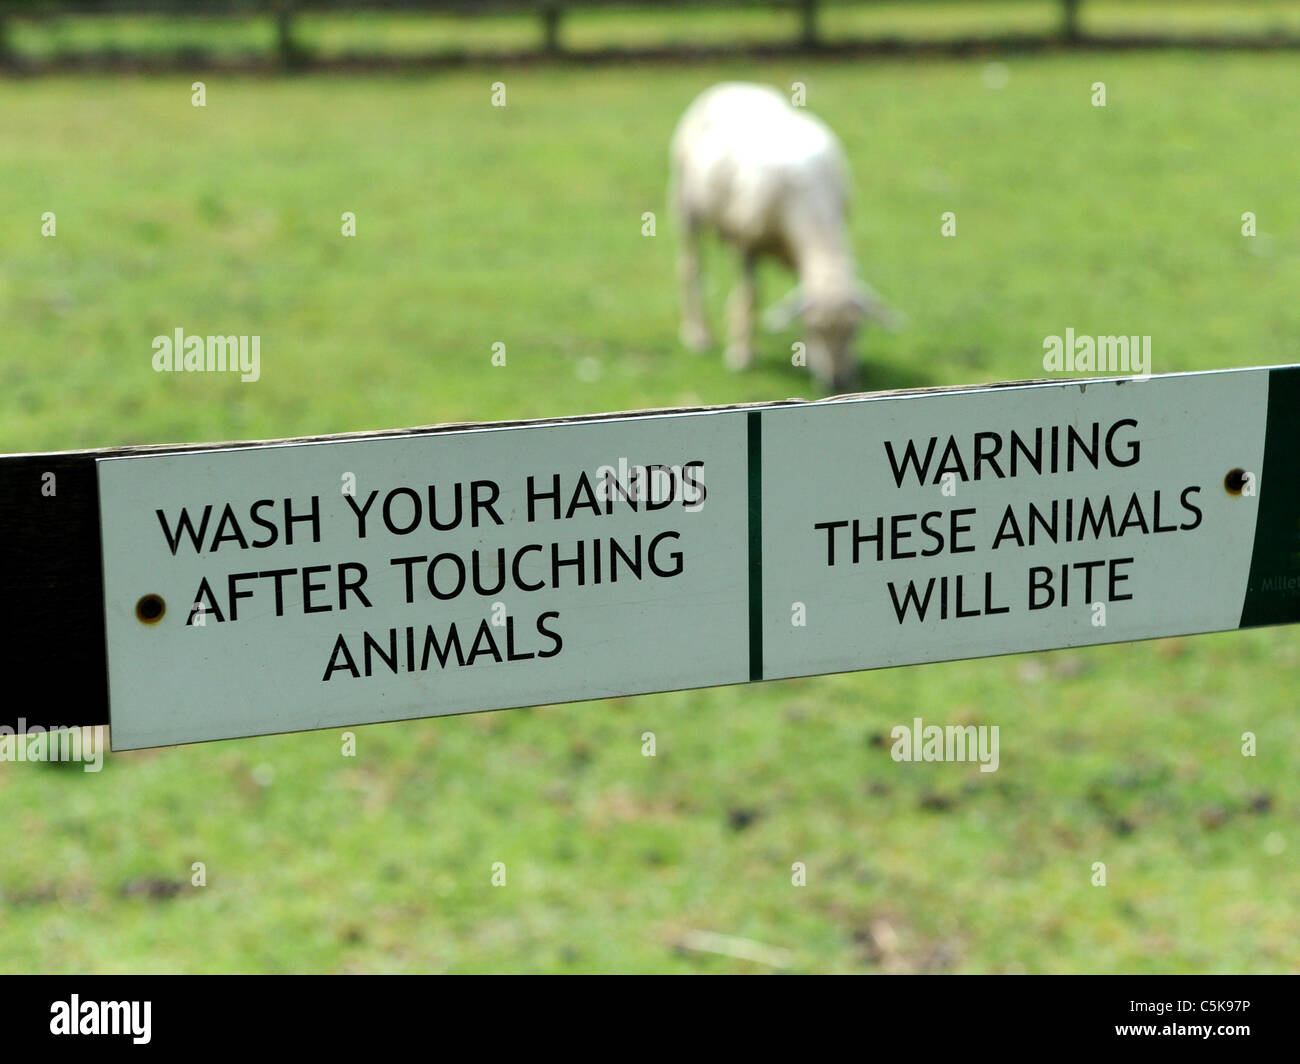 Warning sign wash your hands after touching animals, these animals bite. - Stock Image